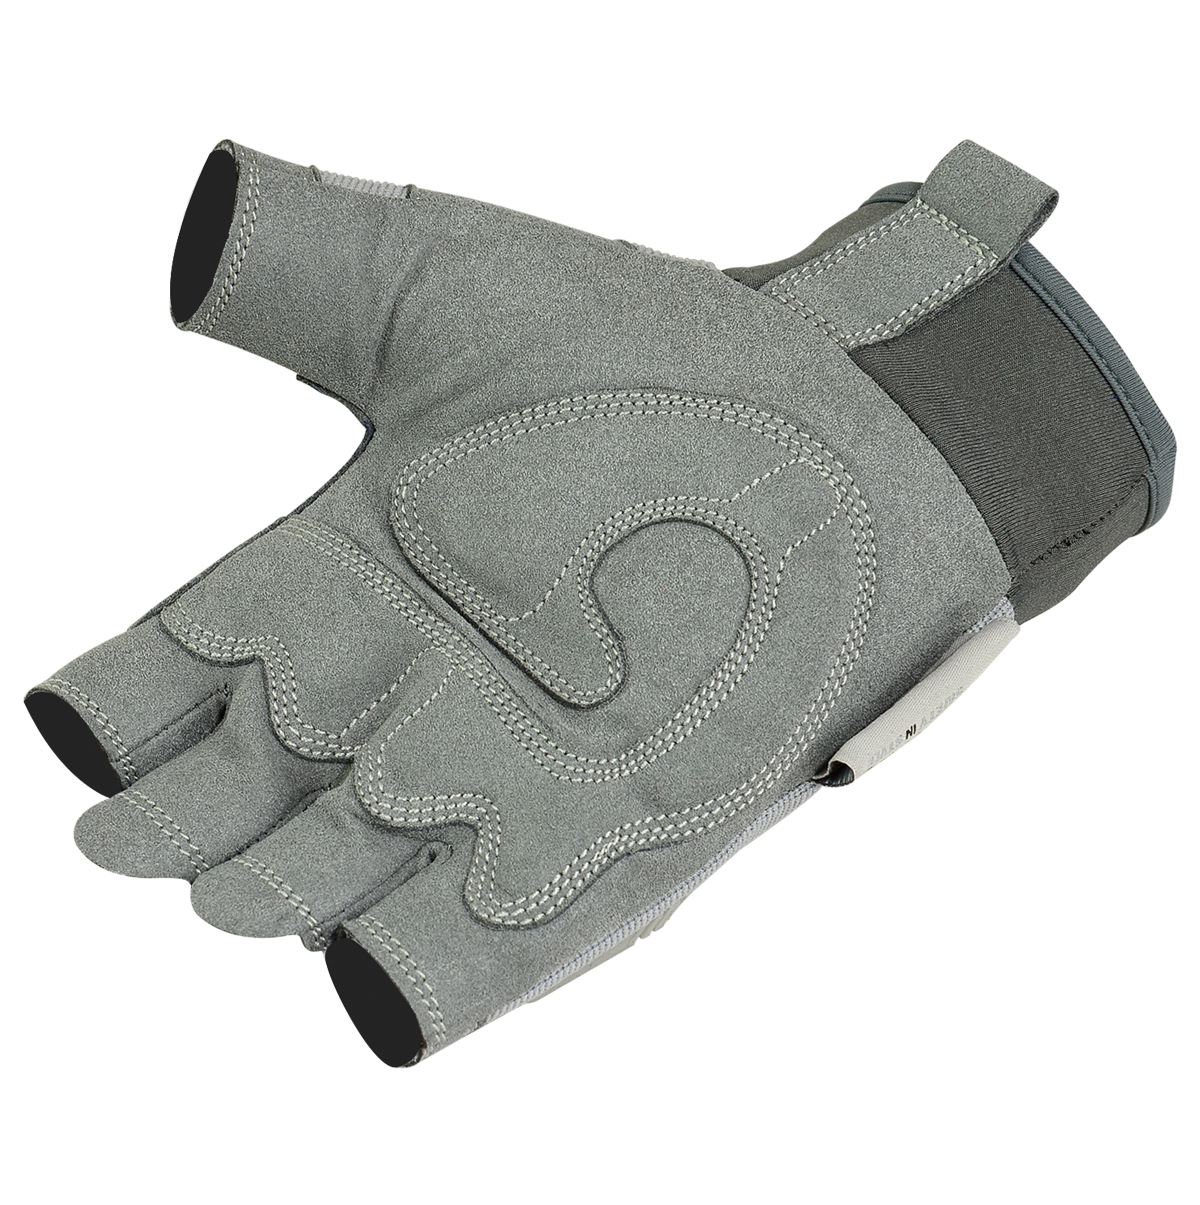 Fingerless impact gloves - Click On Image See The Super Zoom